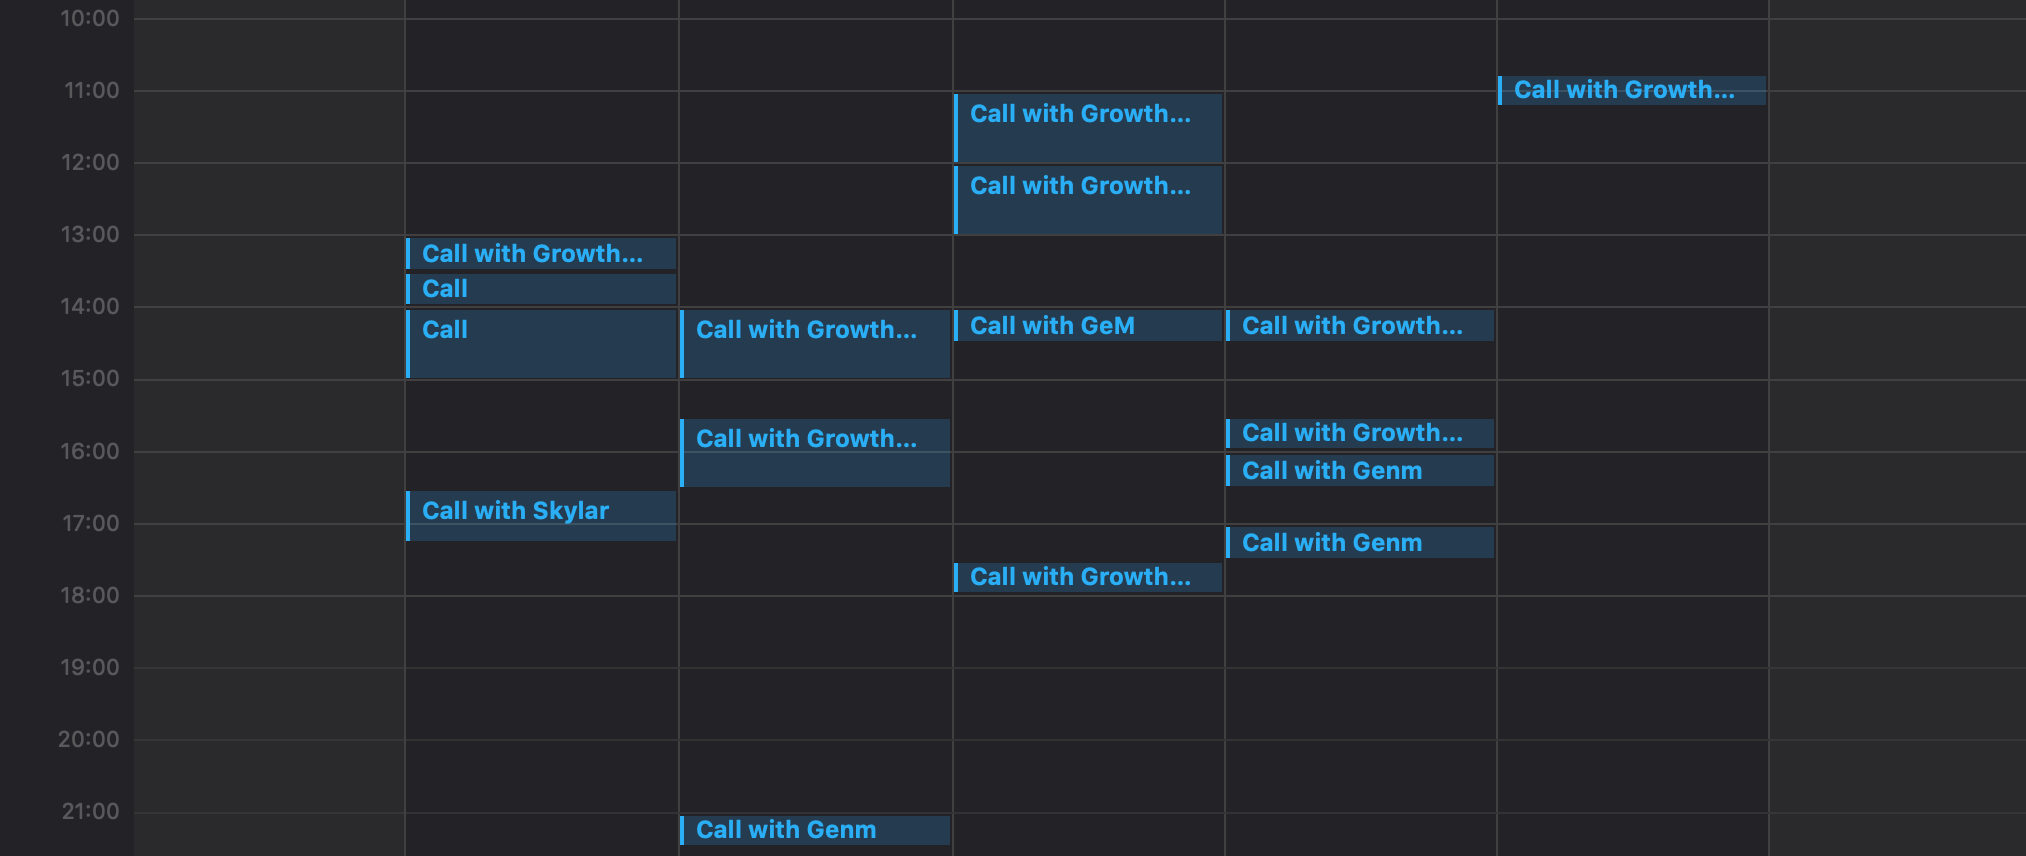 Full calendar by consultants of GrowthMentor